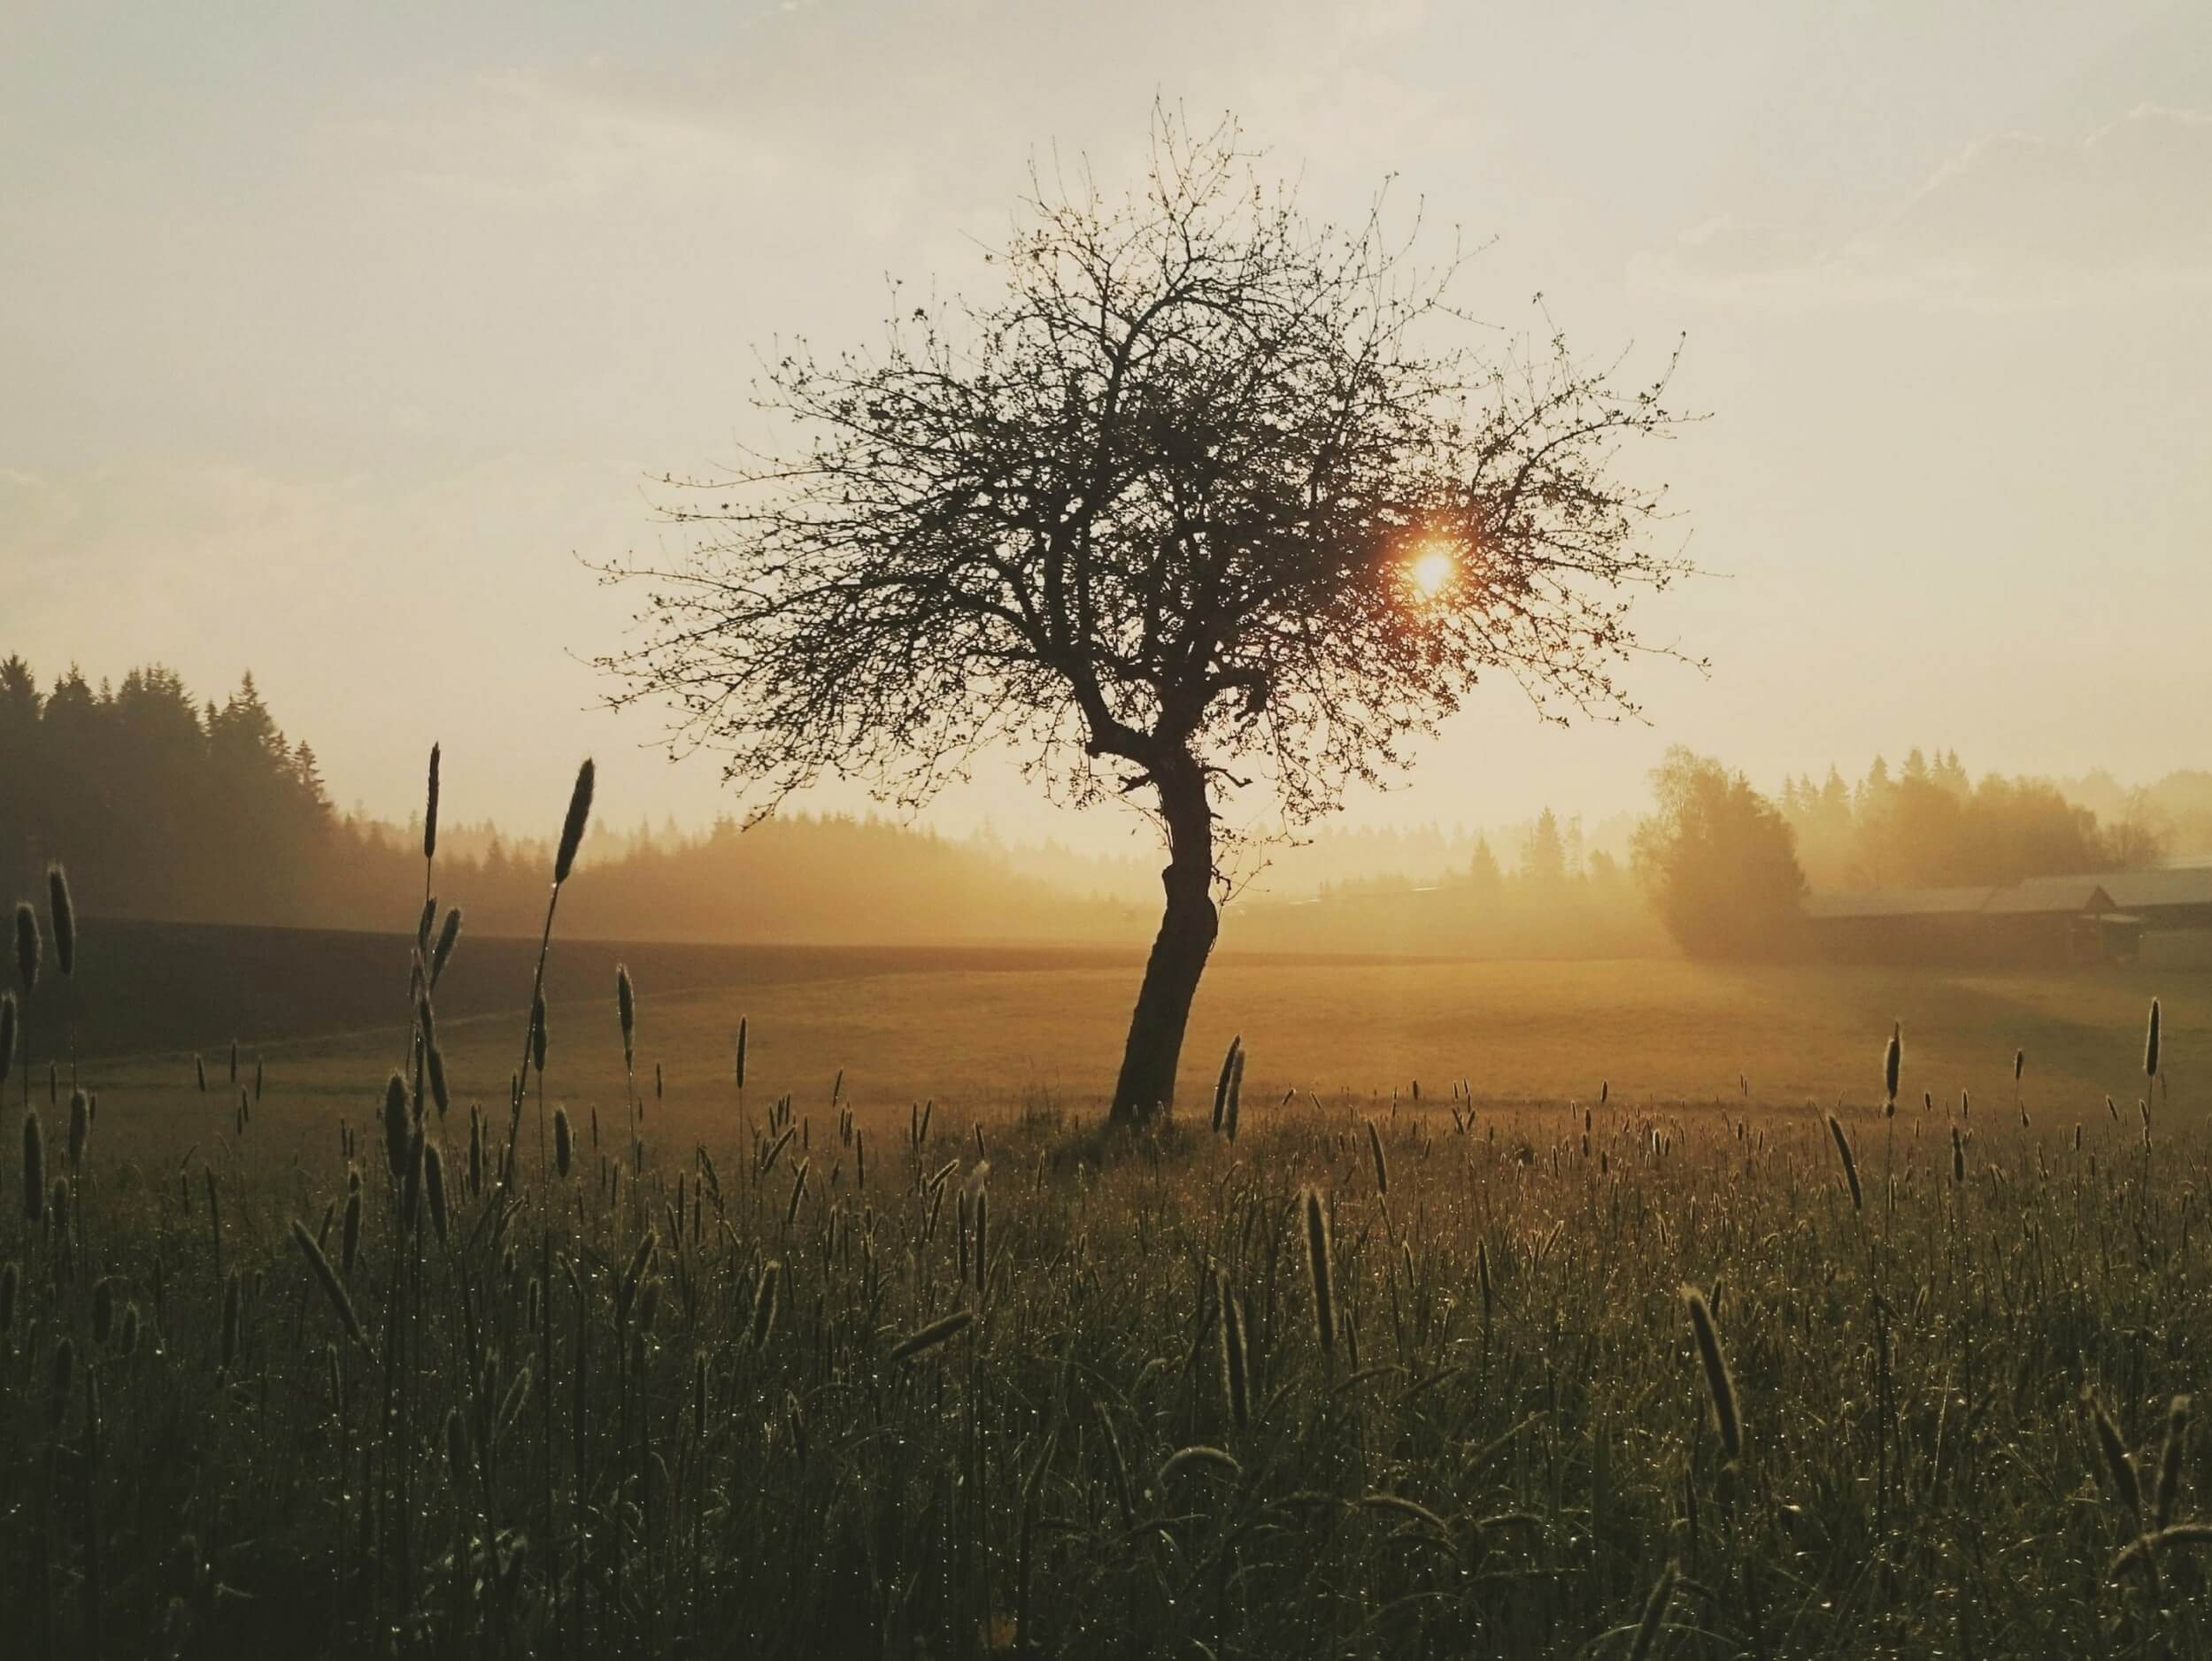 tree-morning-nature-sunrise-163513 compressed